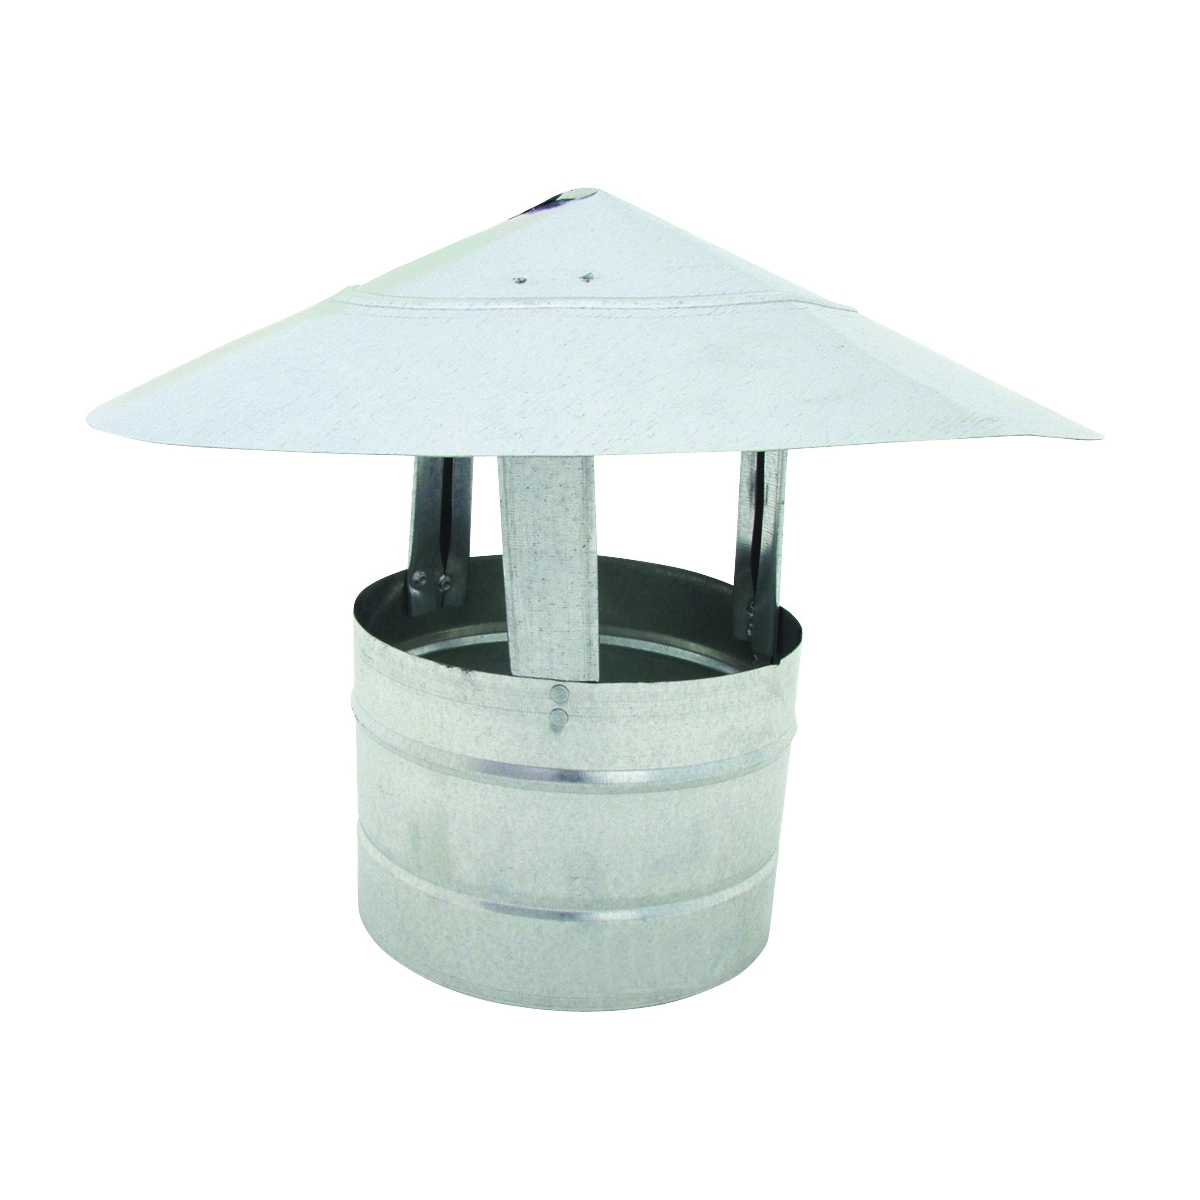 Picture of BILLY PENN 8103 Chimney Hood, 6 in Dia, Galvanized Steel